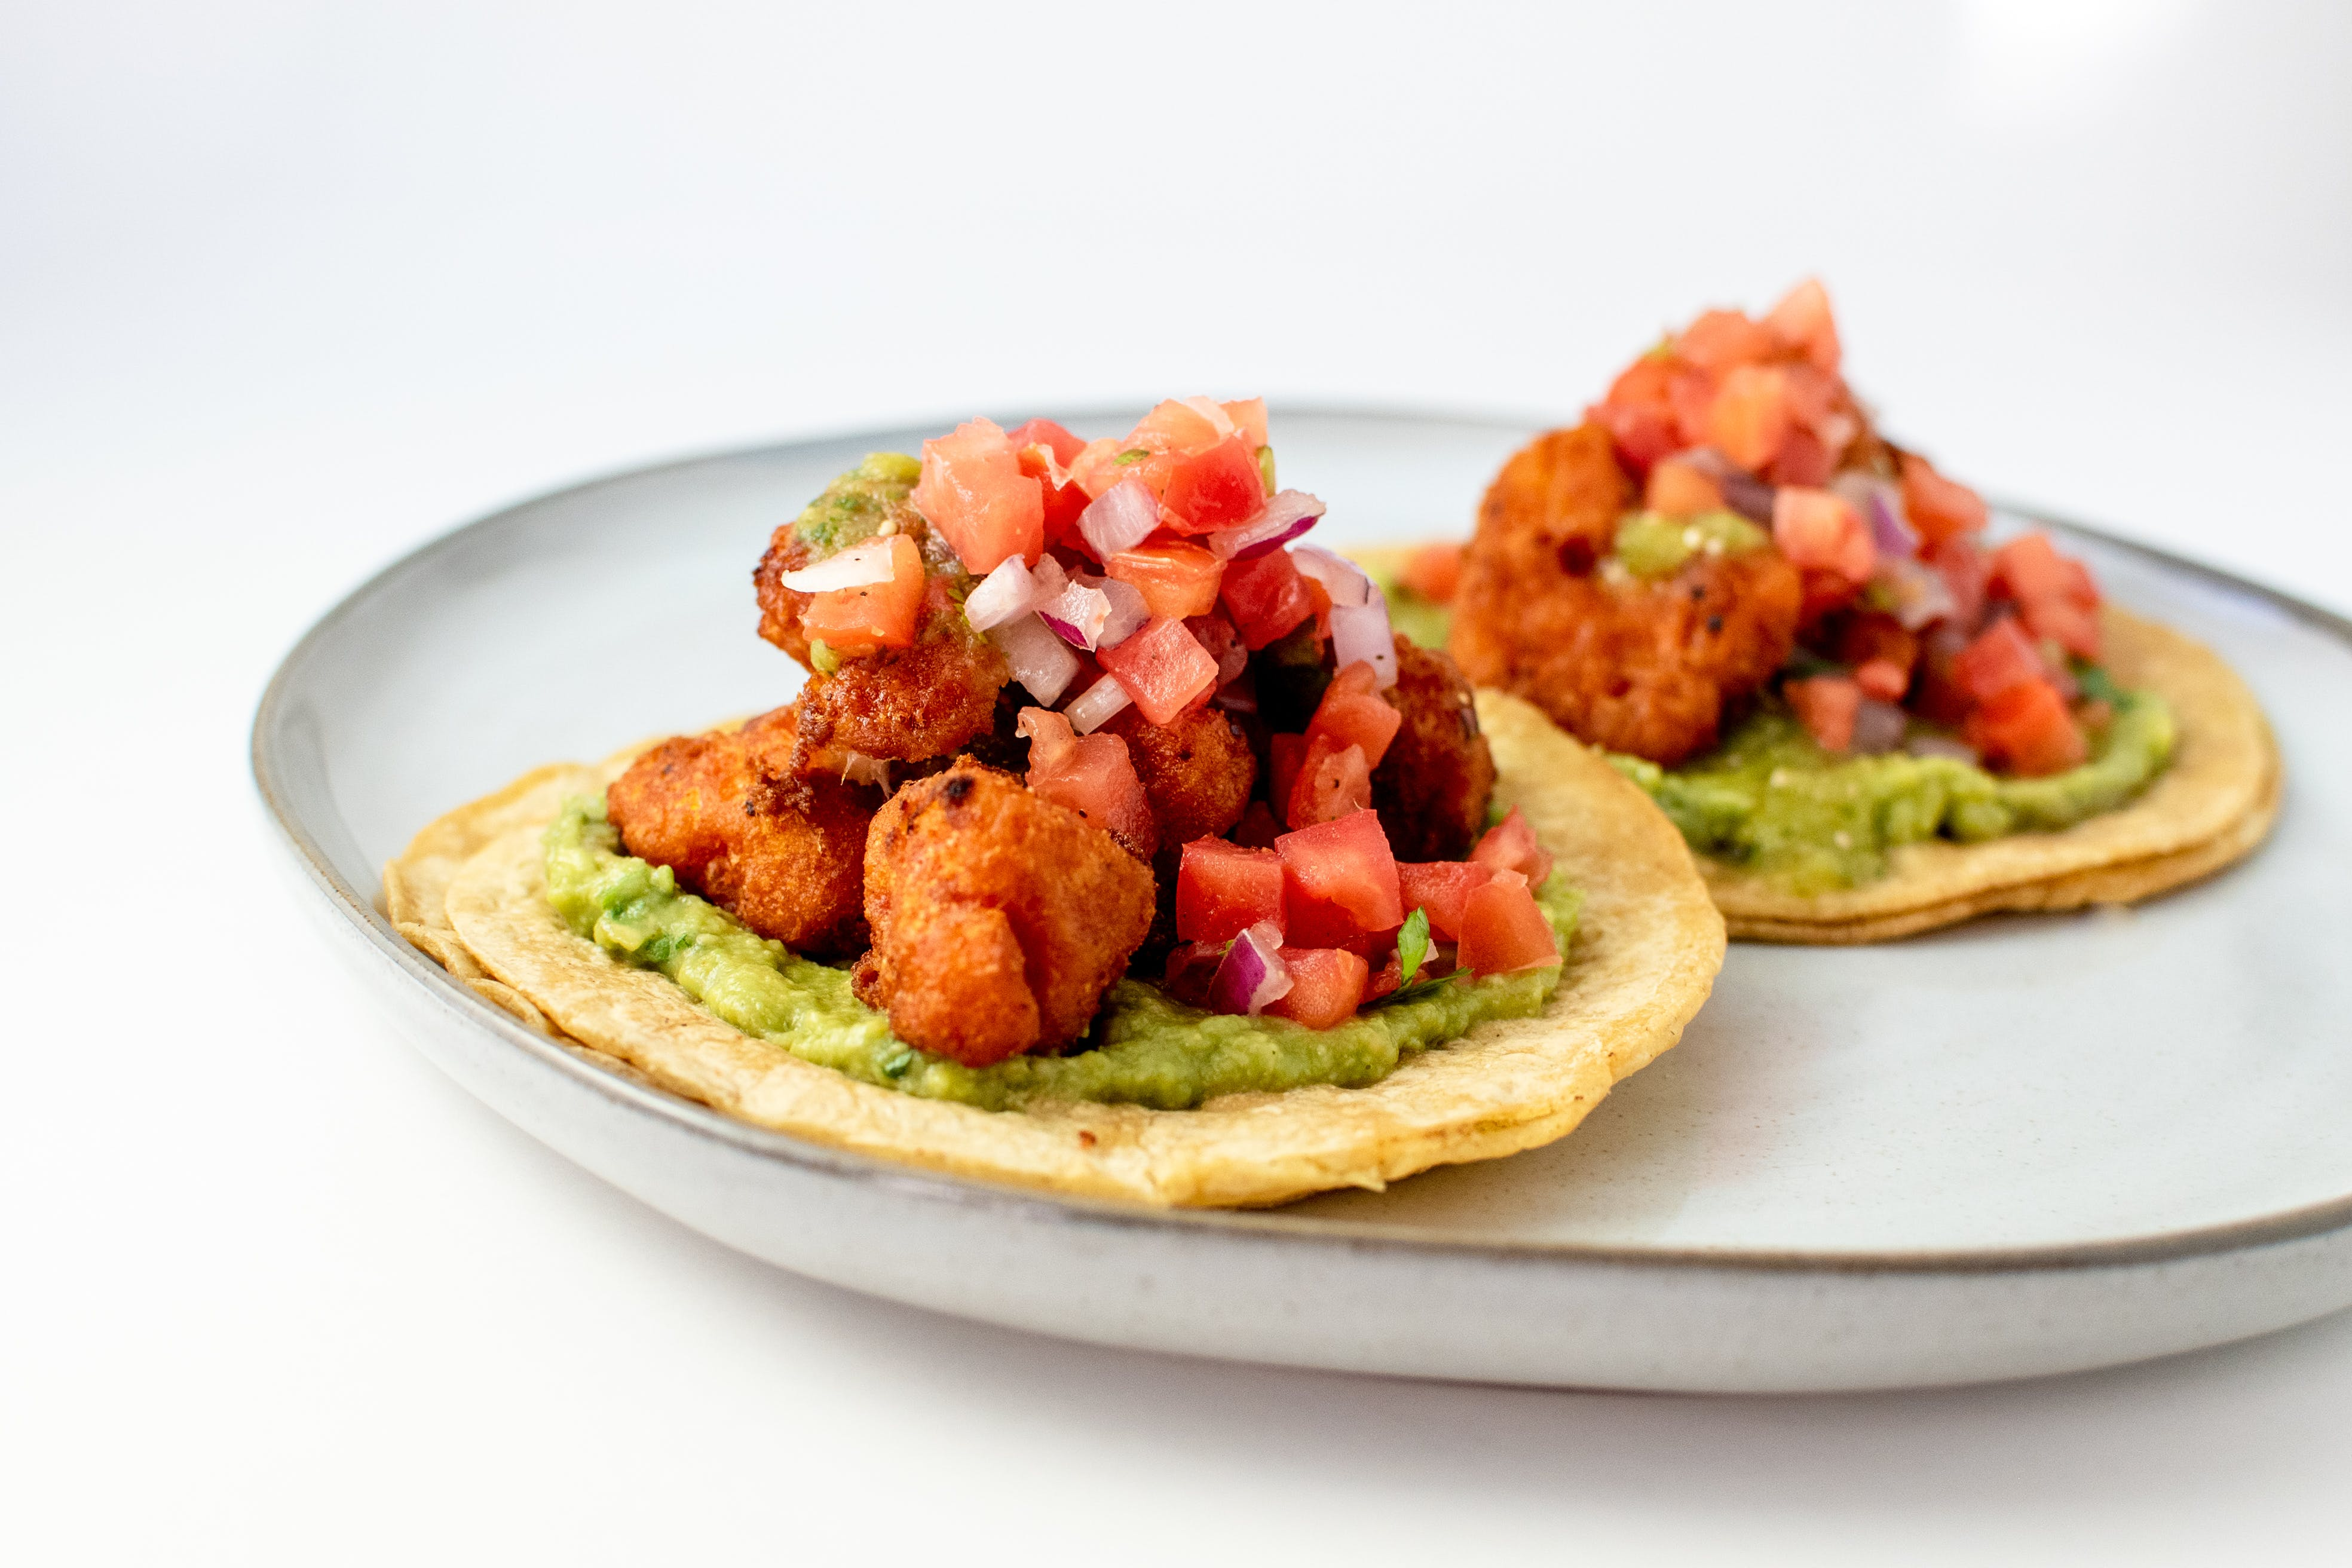 Beer Battered Cauliflower Tacos from Taco Royale - Center Ave in Janesville, WI